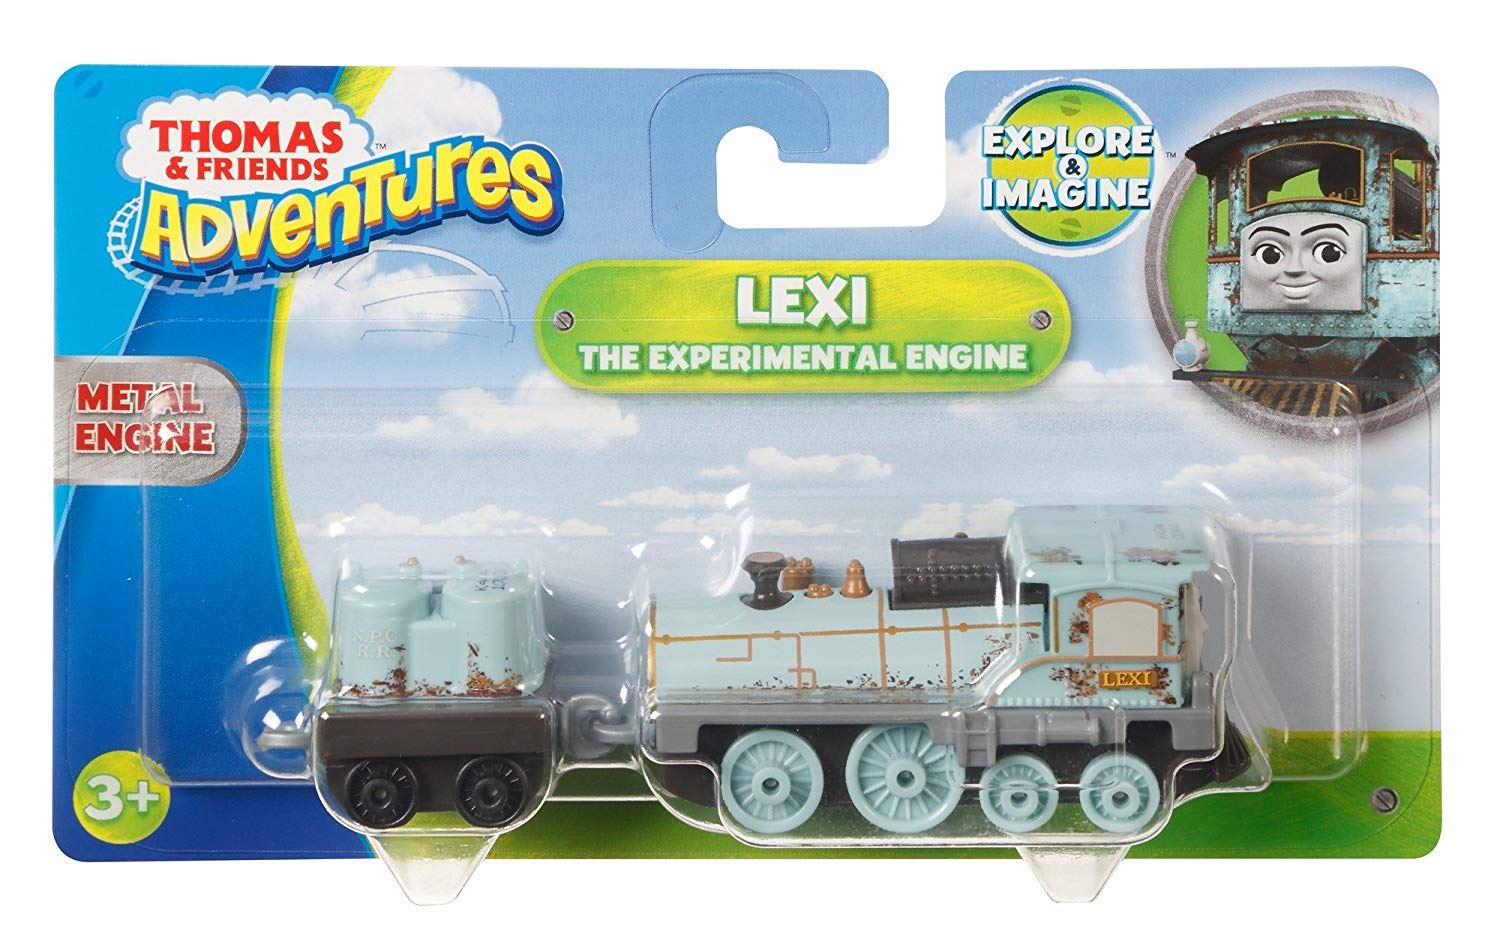 Thomas-amp-Friends-Adventures-Ferdinand-lexi-Shane-Dash-Huge-Bill-Trains Indexbild 32